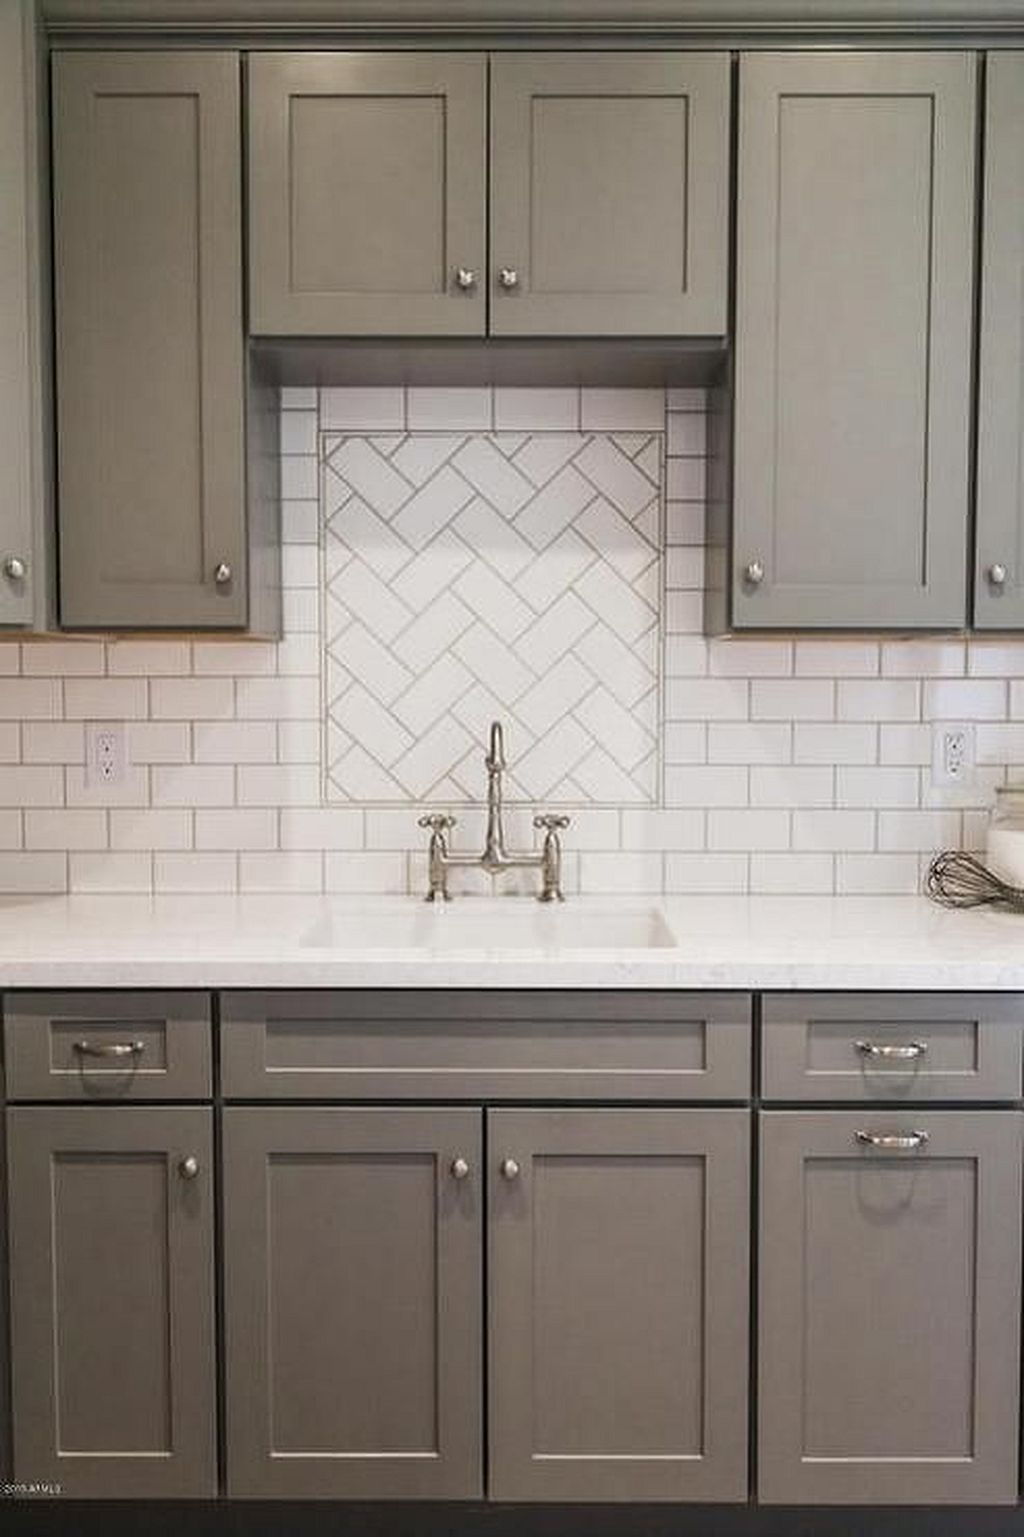 Classy Subway Tile Backsplash For Kitchen Or Bathroom (43) | Home ...